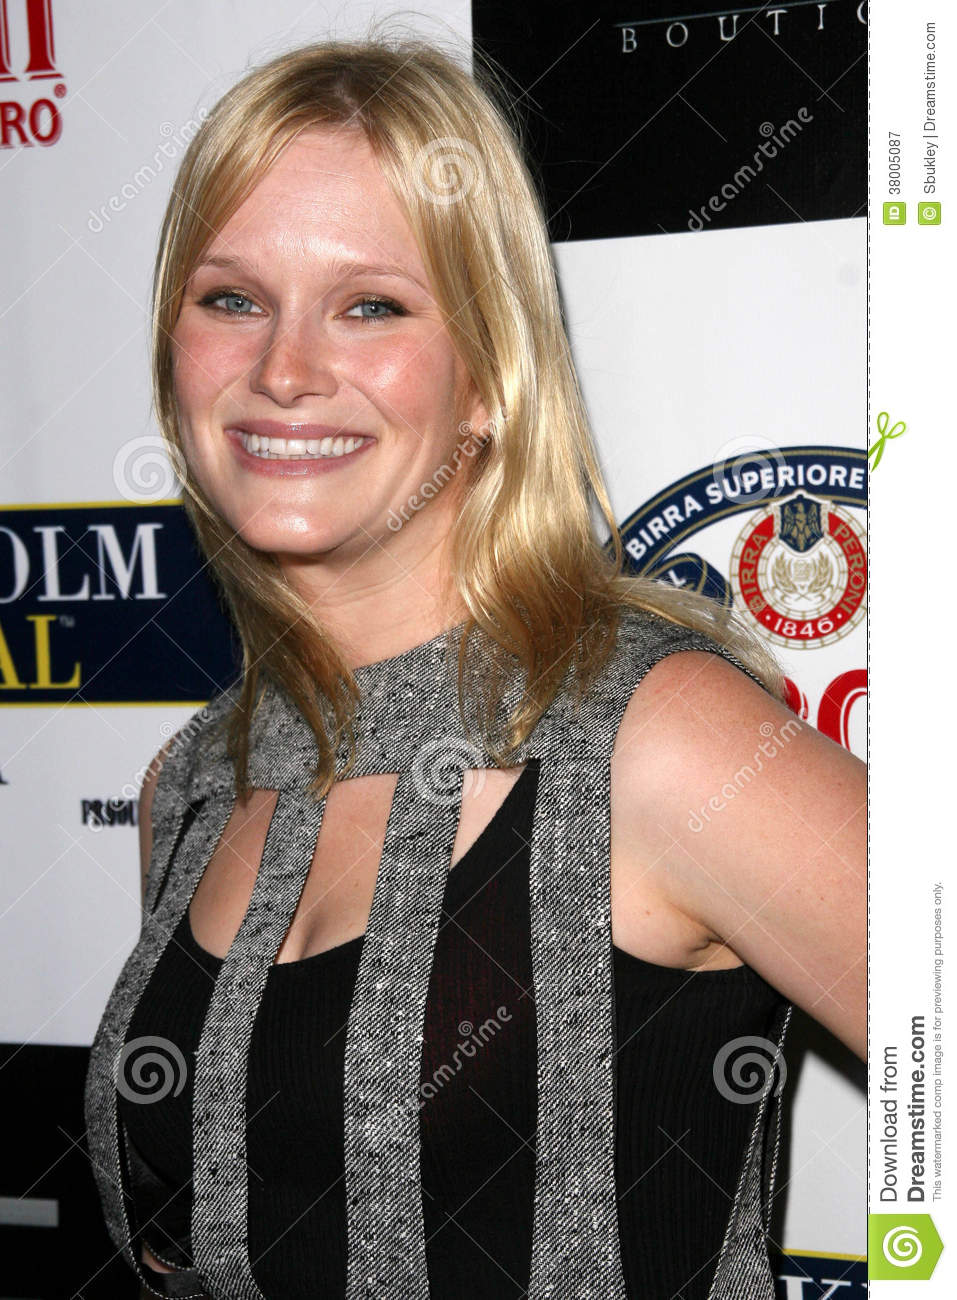 Nicholle Tom Nicholle Tom new pictures